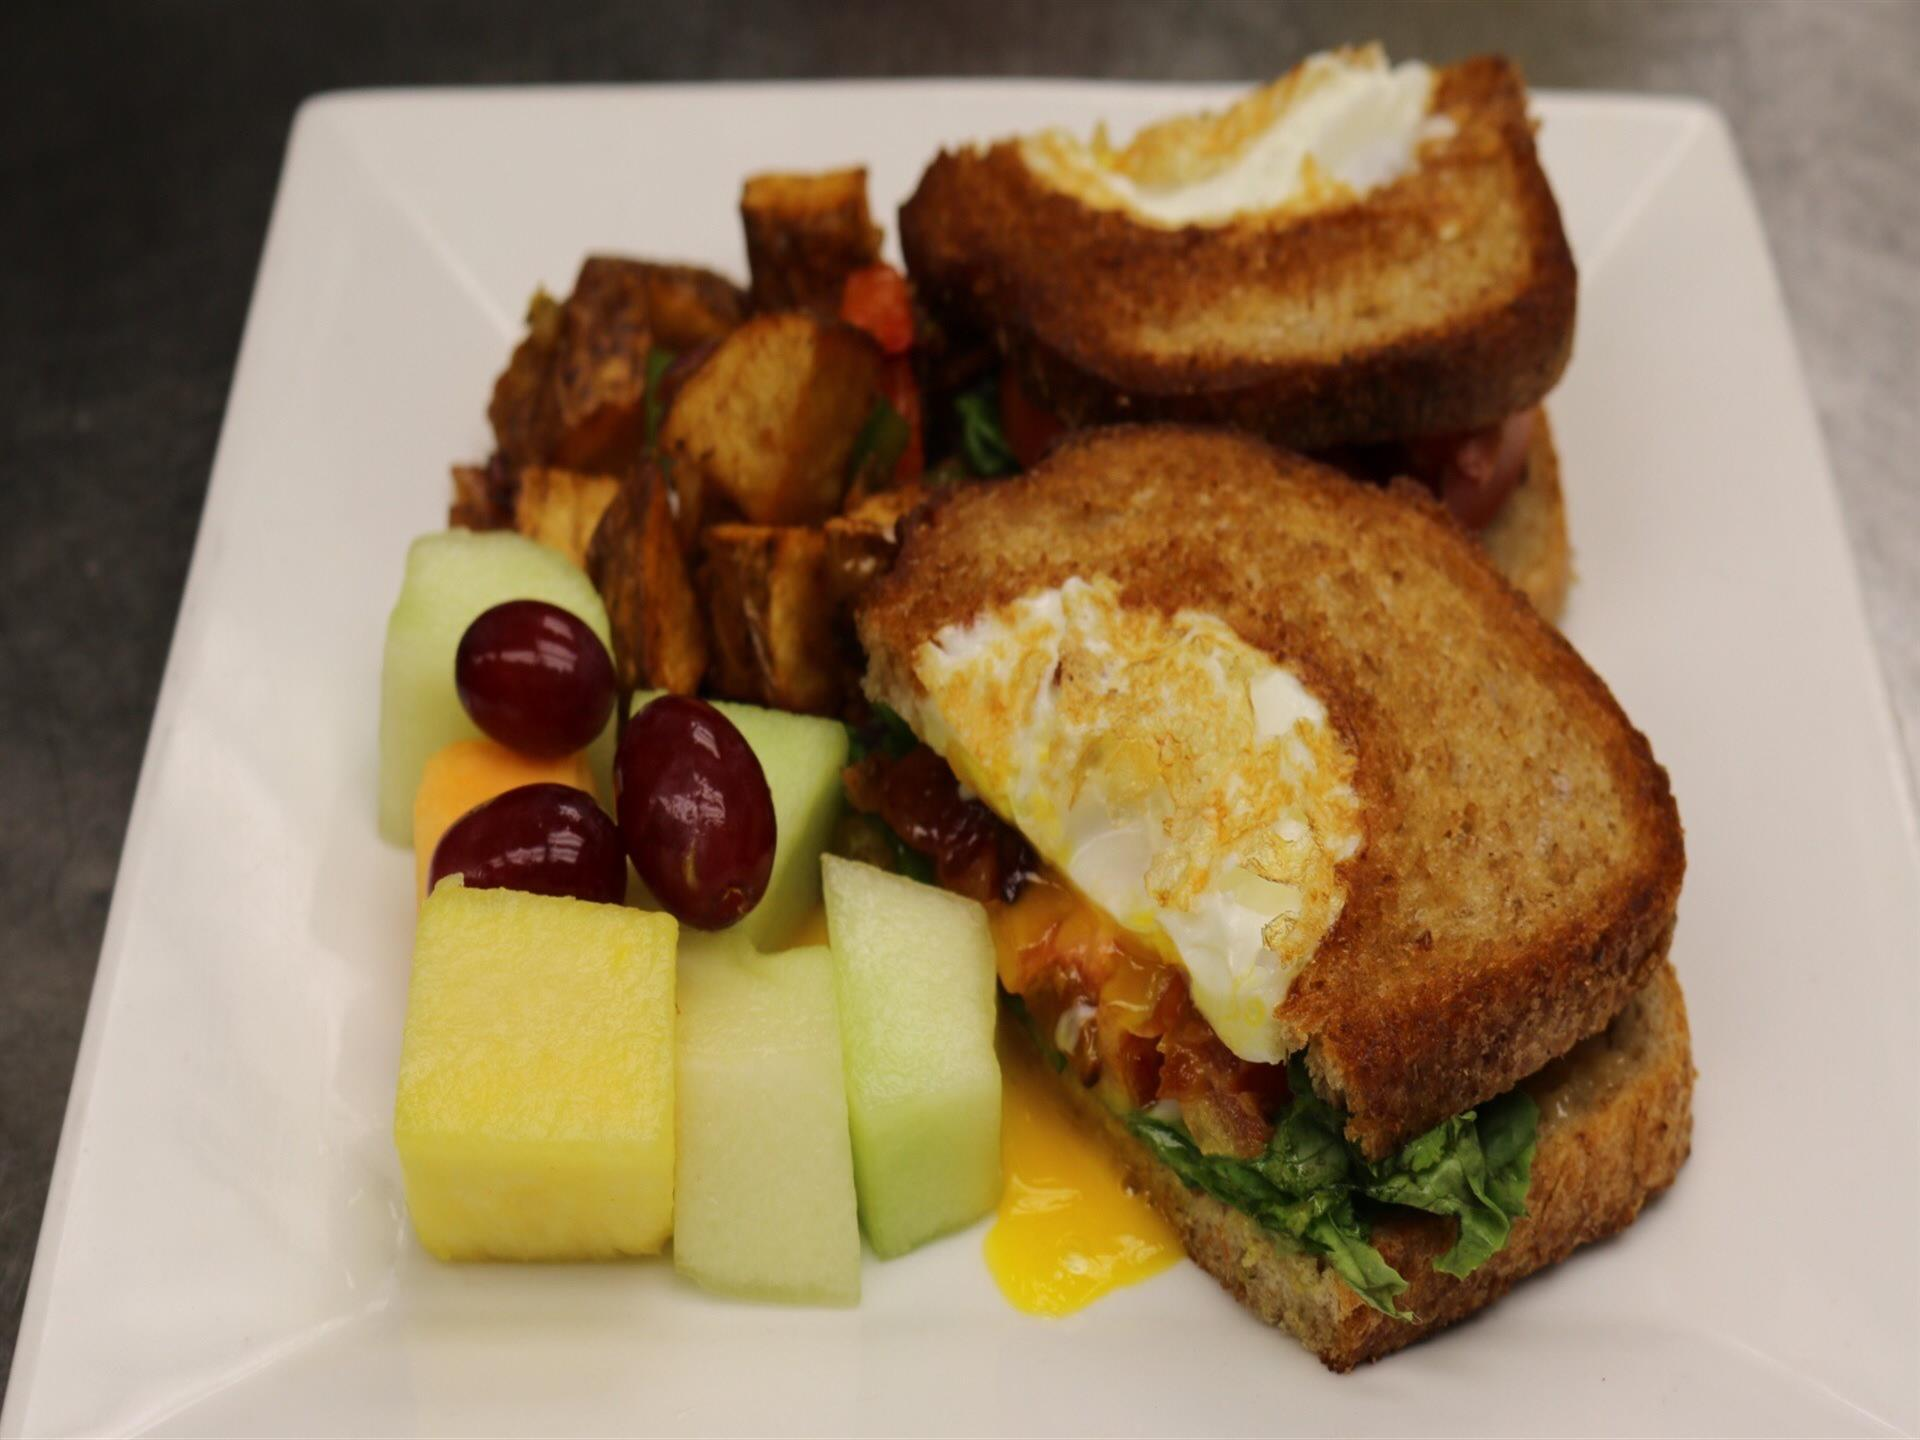 Over easy egg sandwich with a side of fruit and potatoes